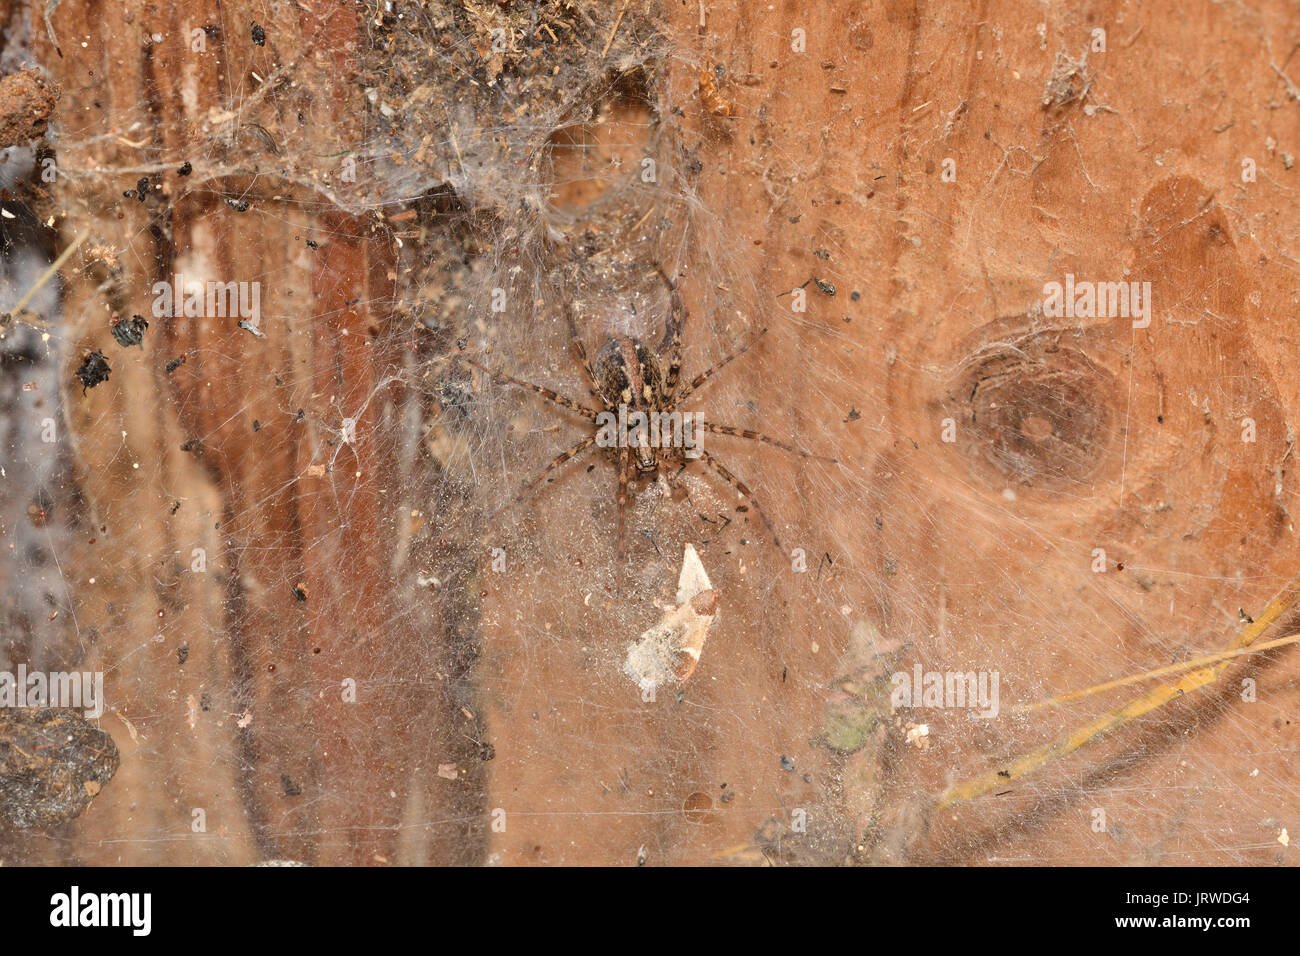 spider spinds his web in the net - Stock Image